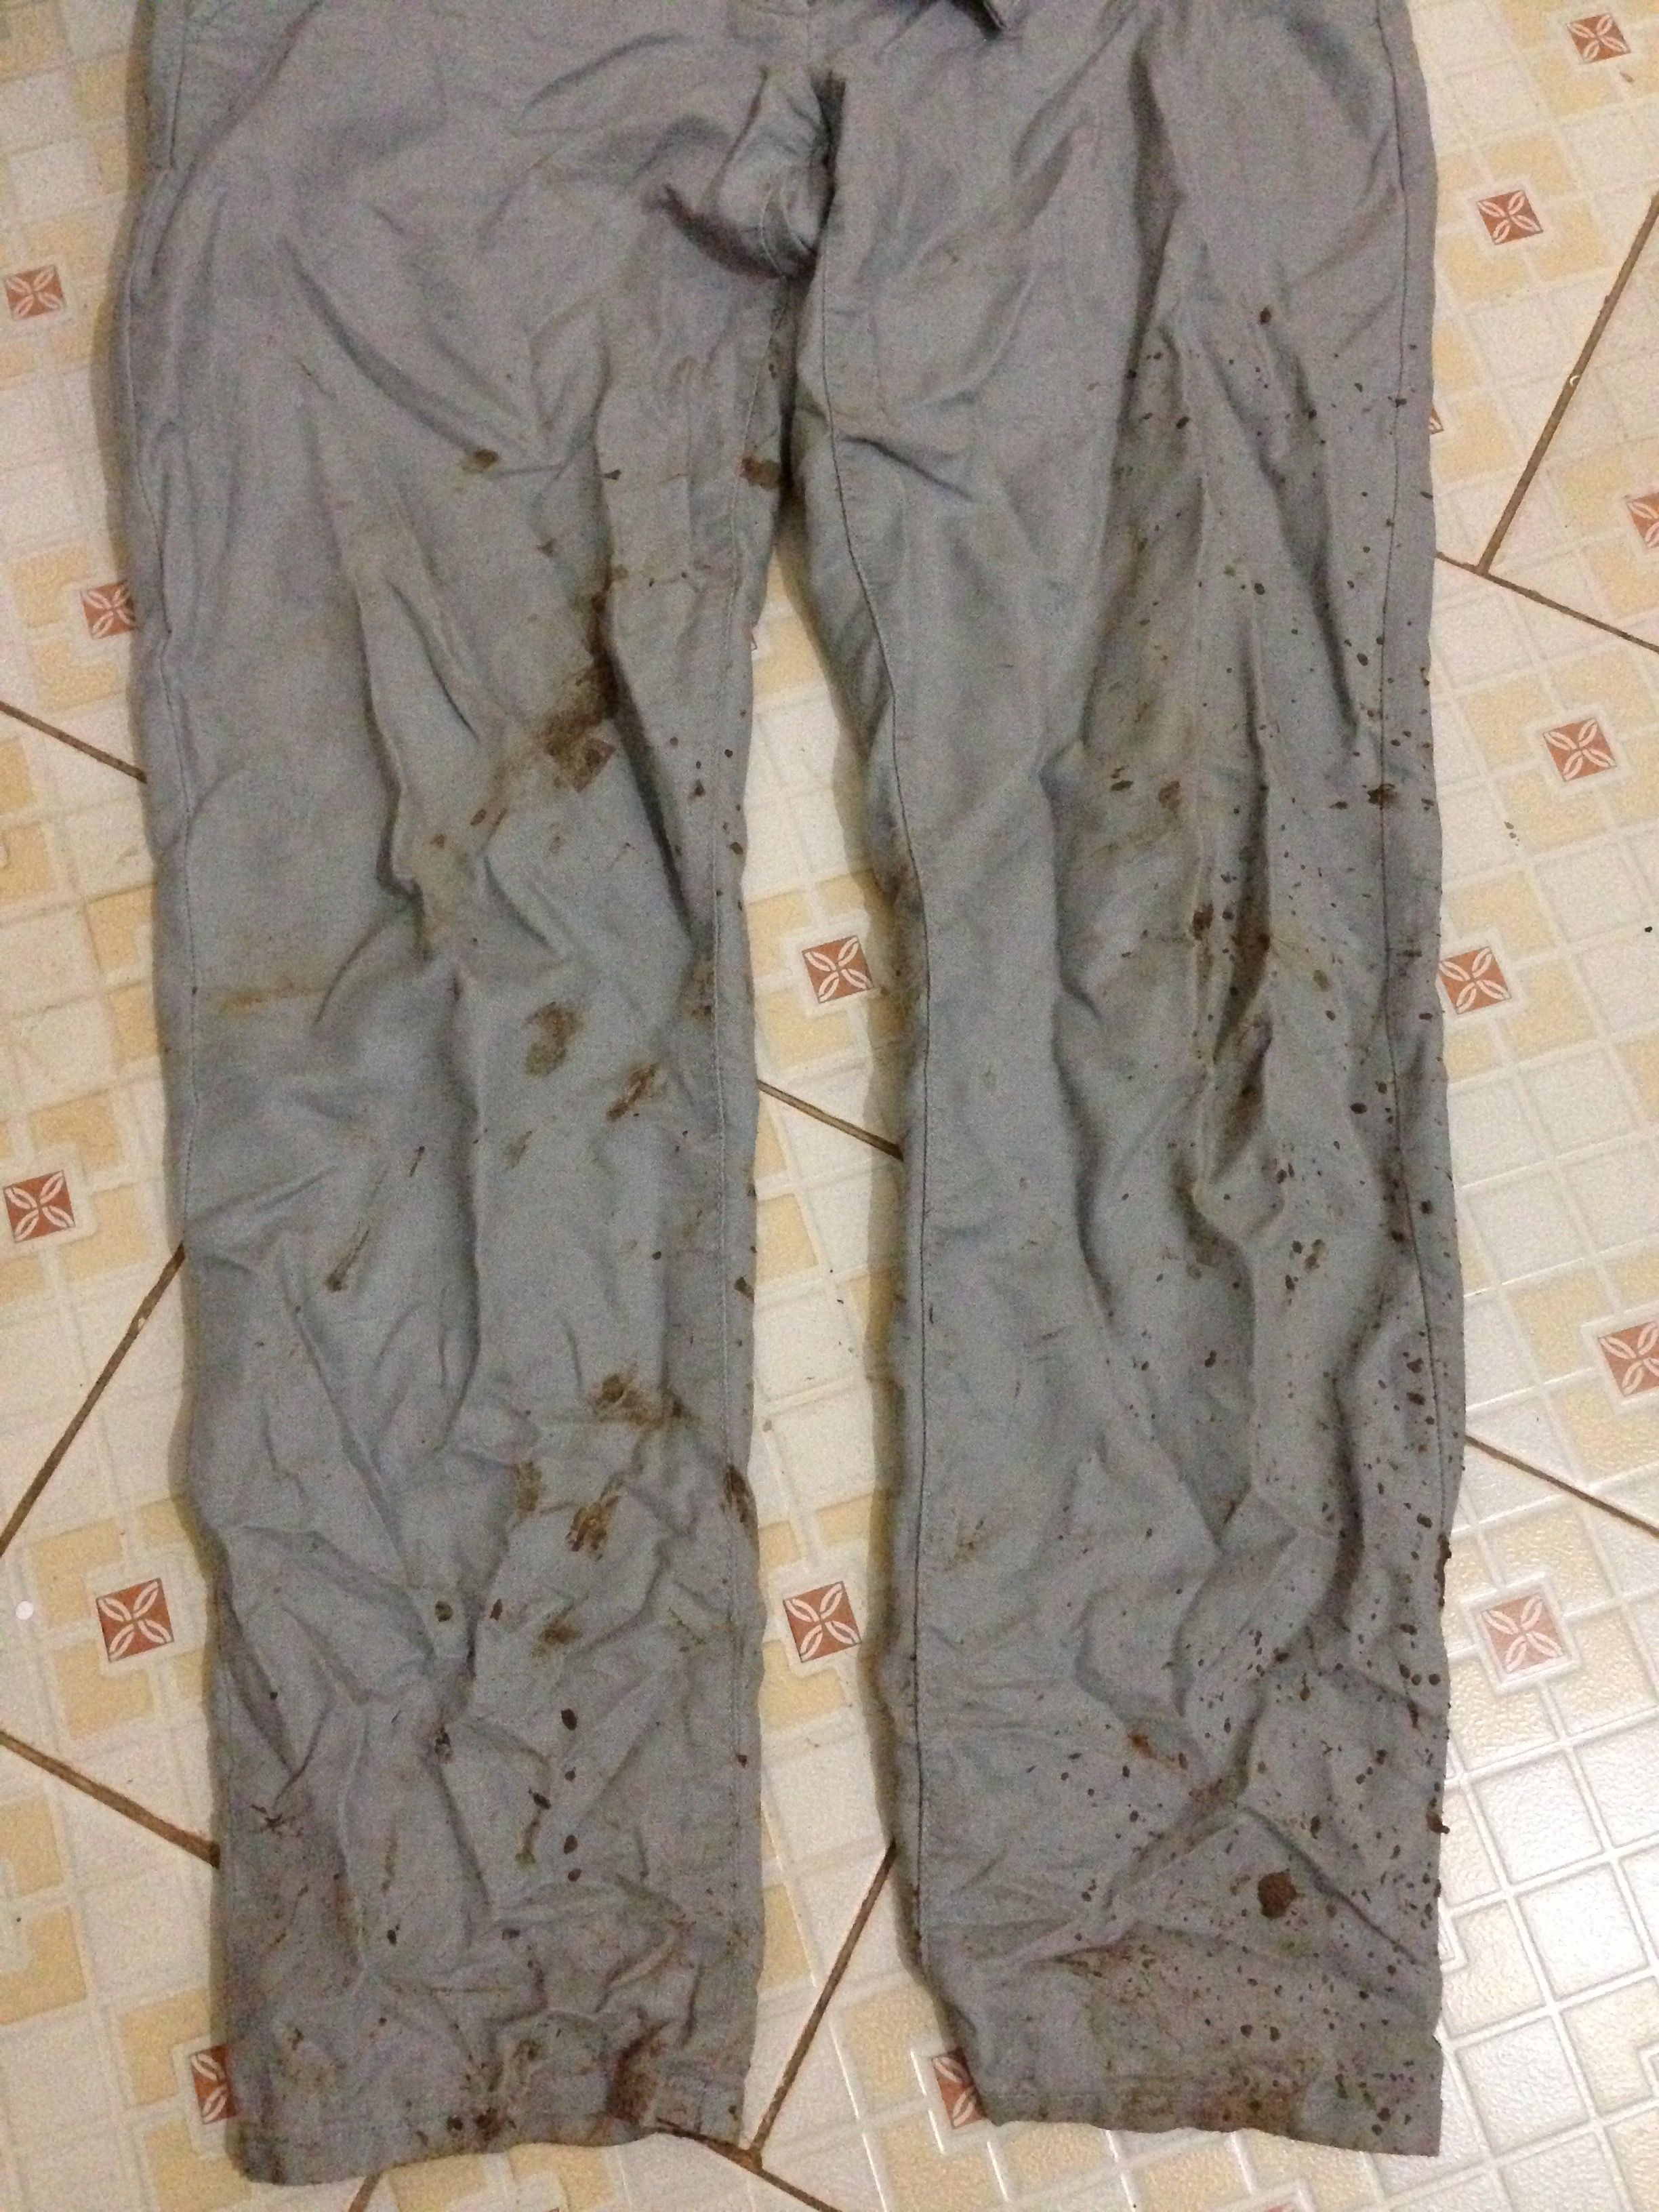 Pants after a mud shower!